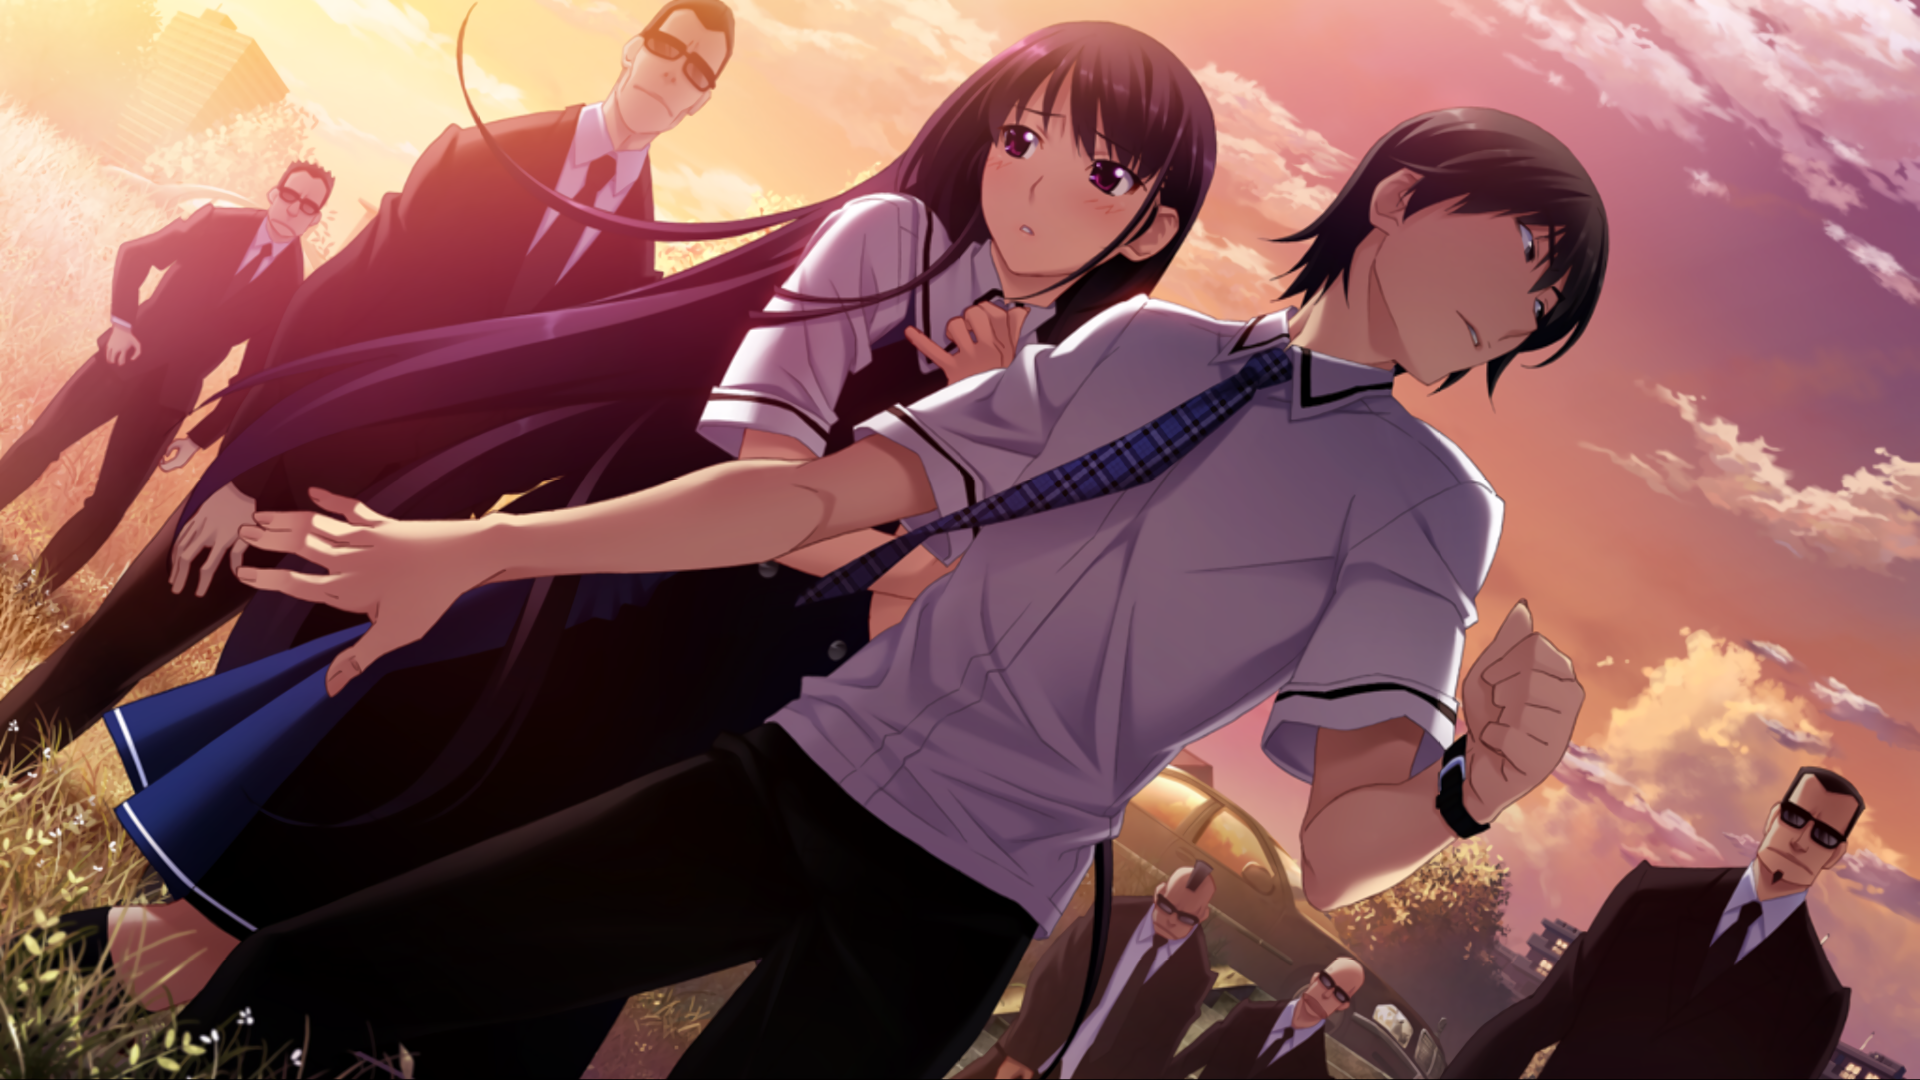 Grisaia (Series) Backgrounds on Wallpapers Vista